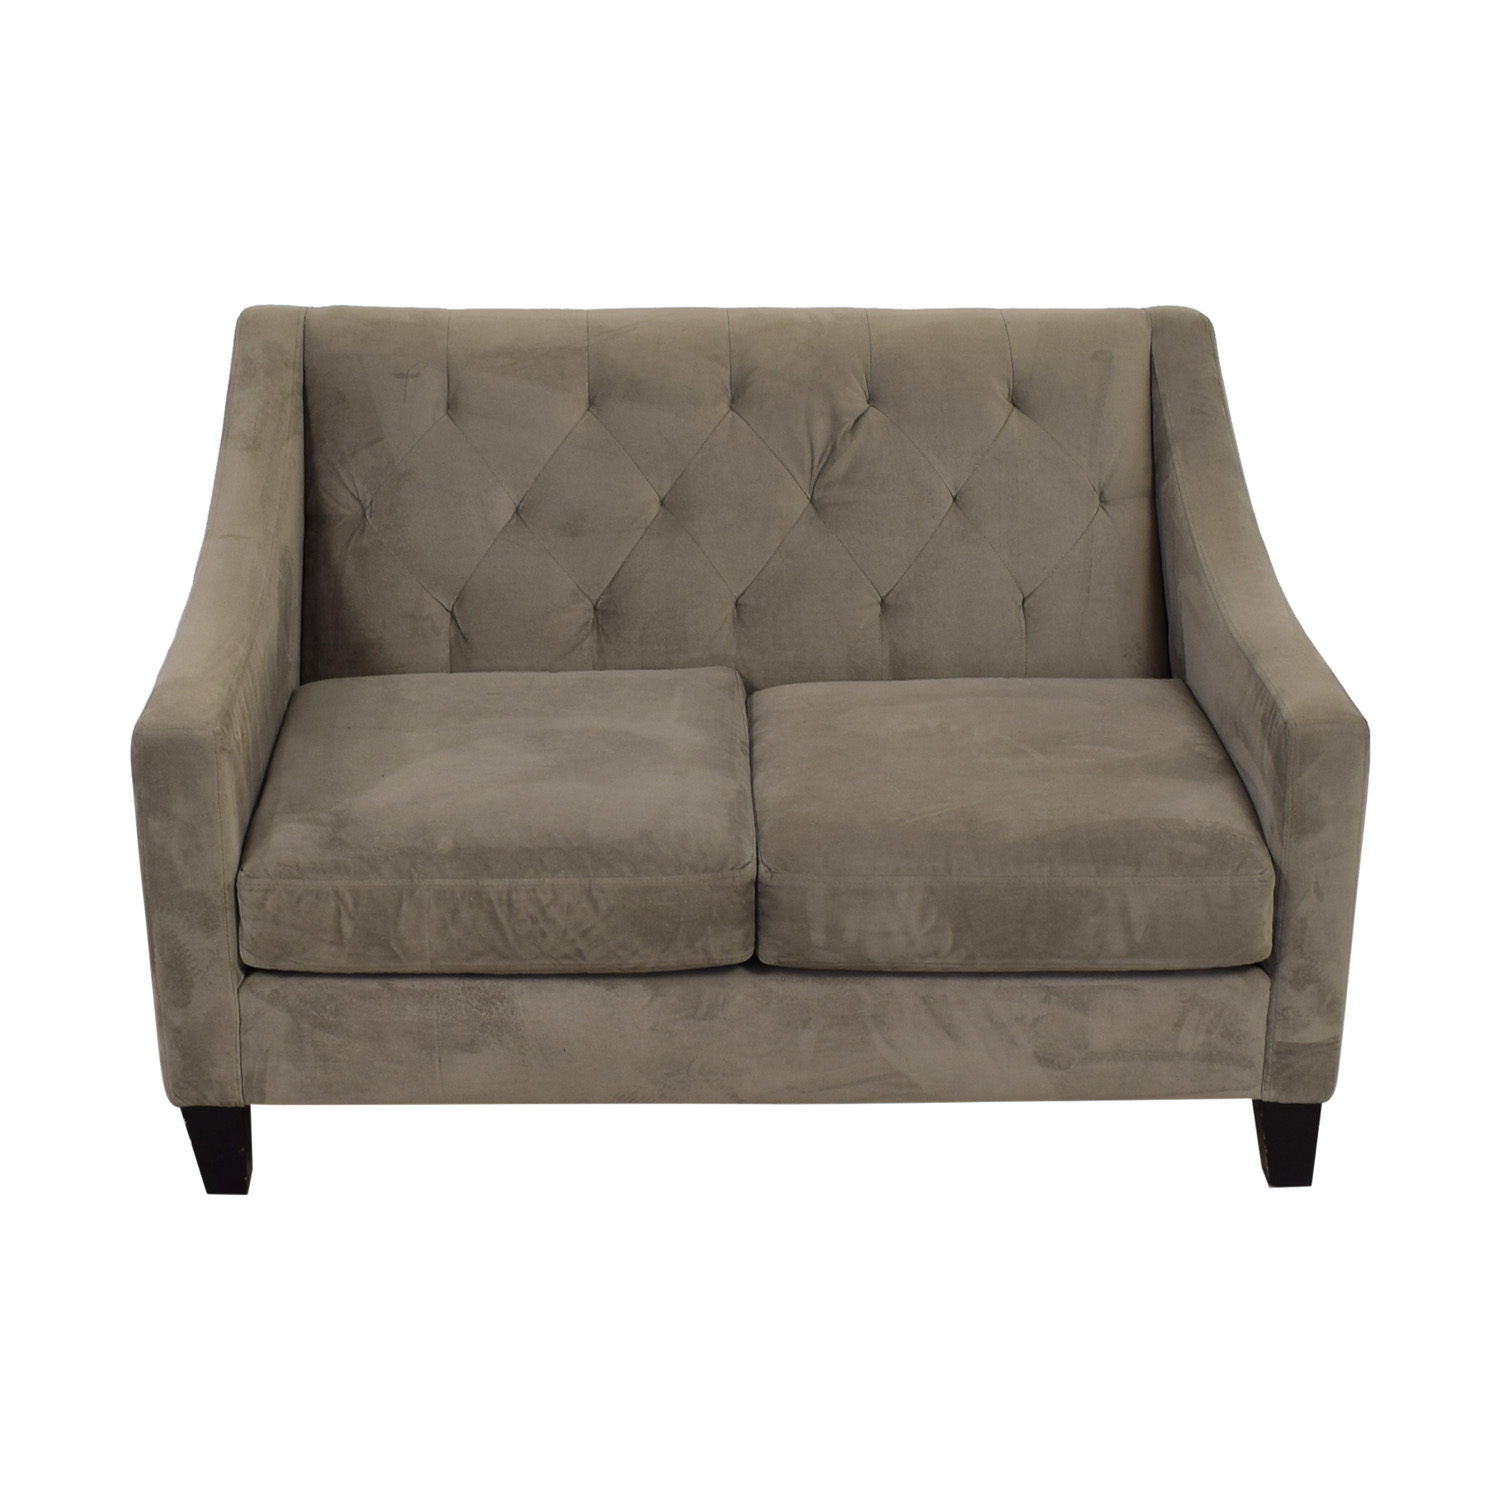 Better By Design By Grey Tufted Sofa Nj Grey Tufted Sofa92